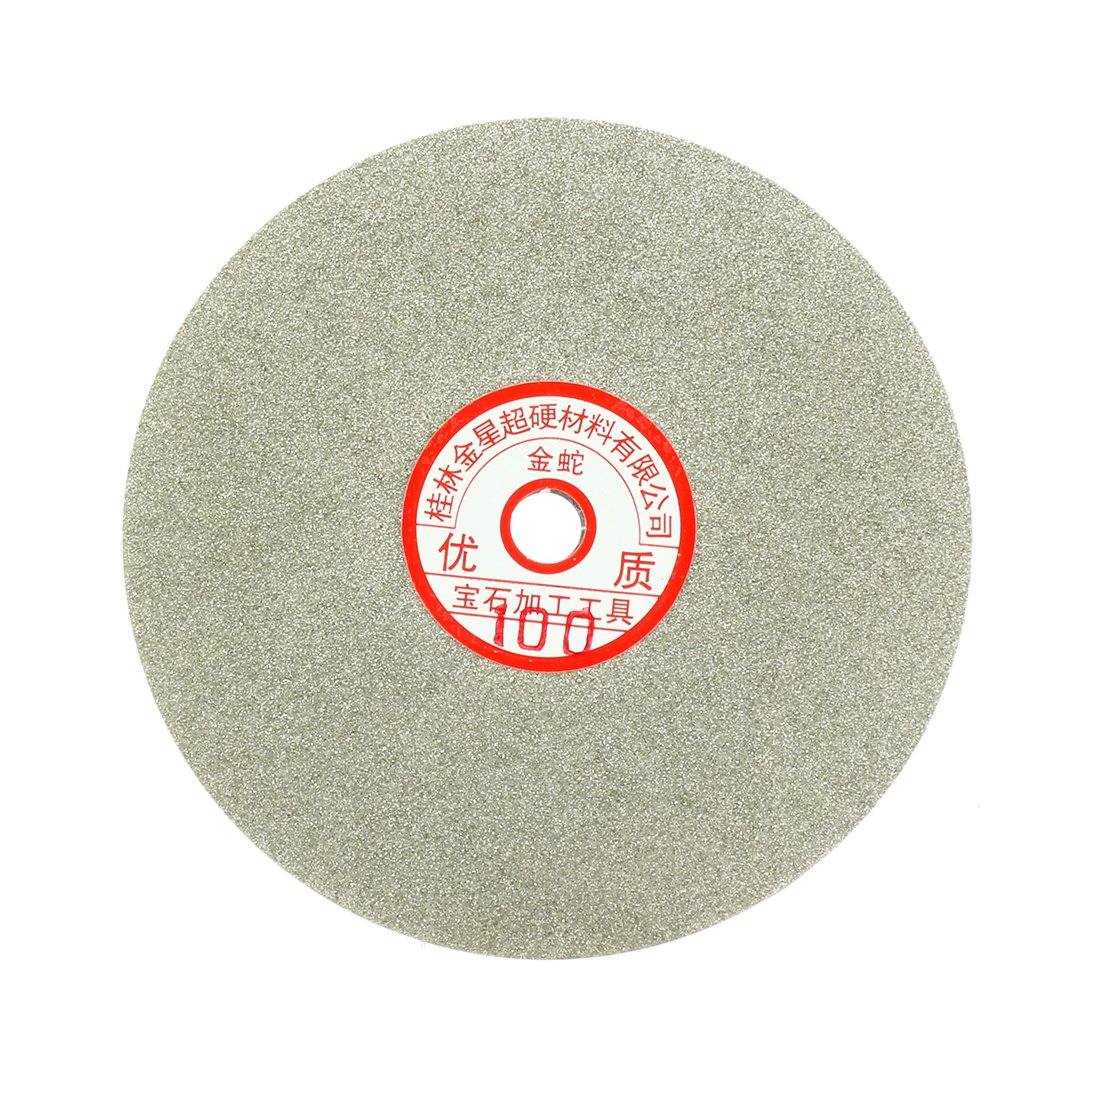 uxcell 6-inch Grit 100 Diamond Coated Flat Lap Wheel Grinding Sanding Polishing Disc